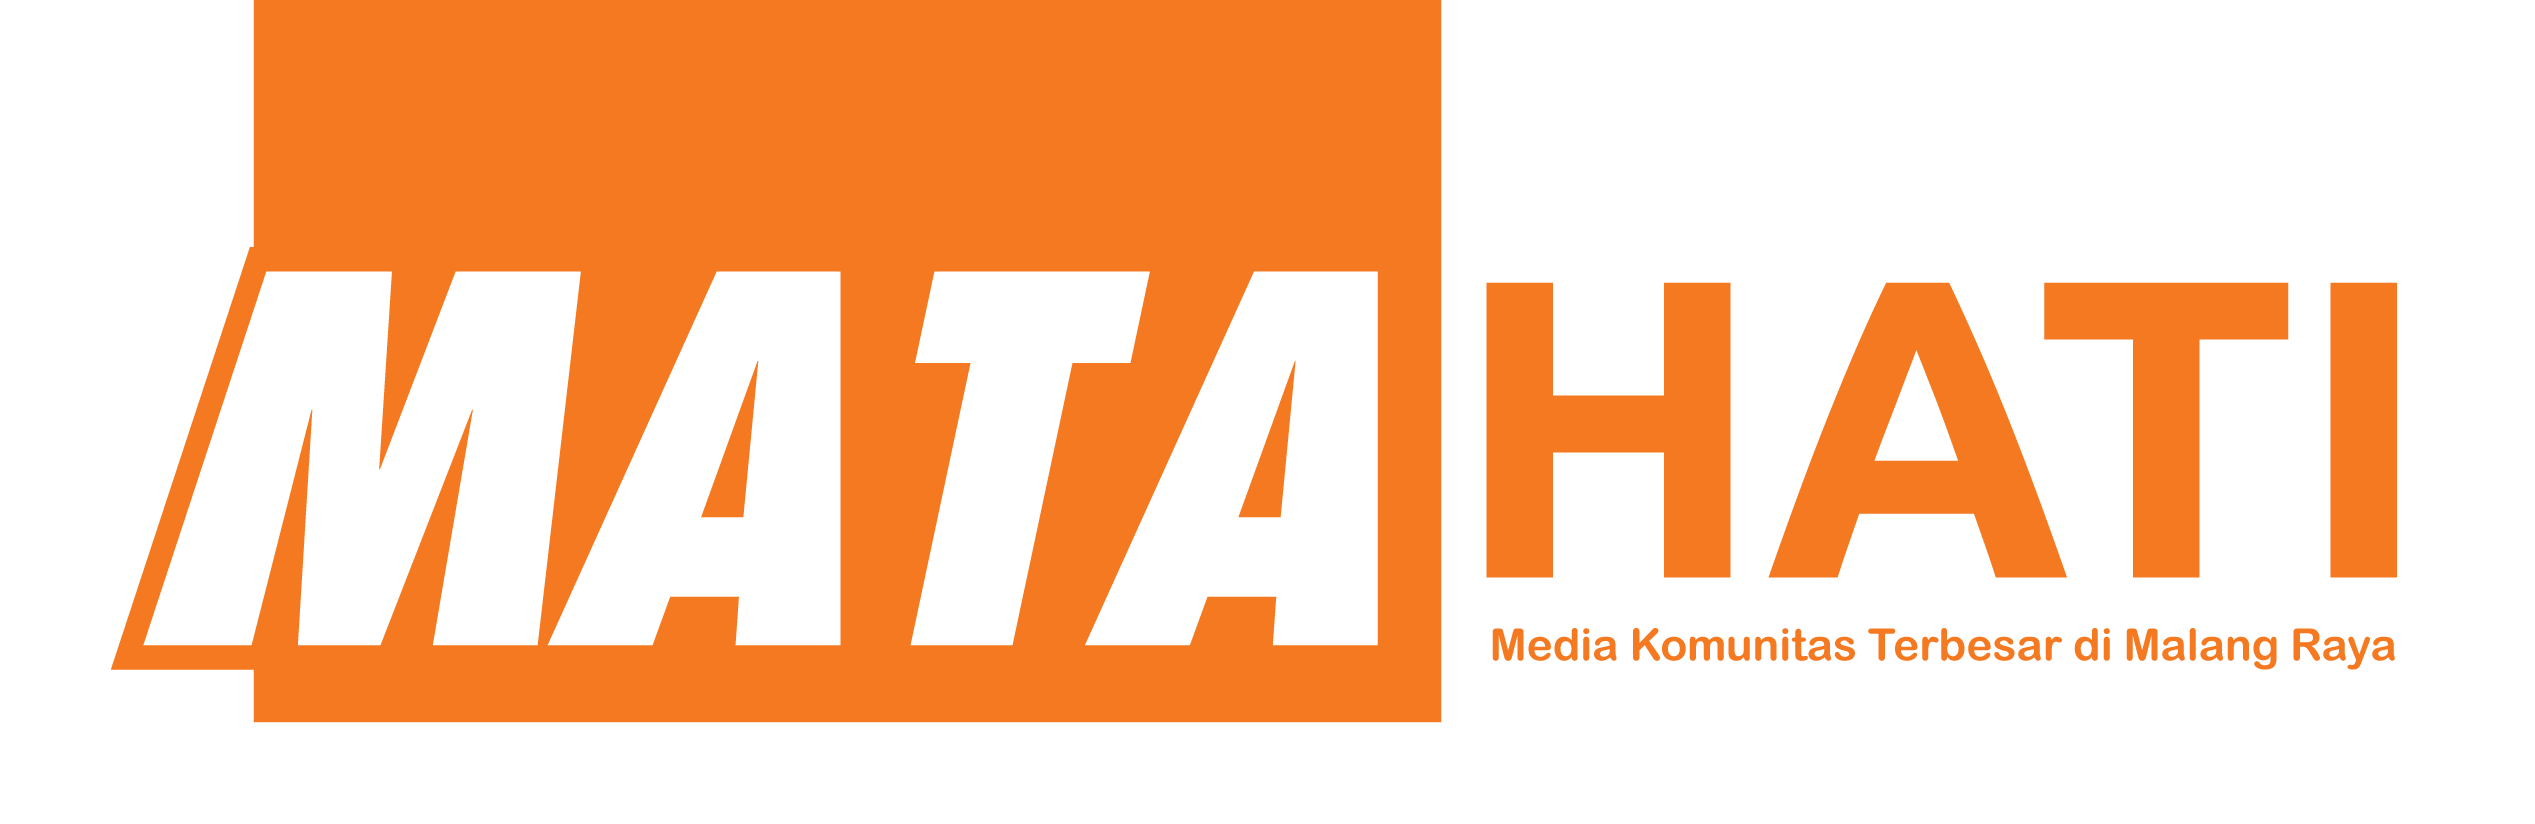 Logo Tabloid Mata Hati - new